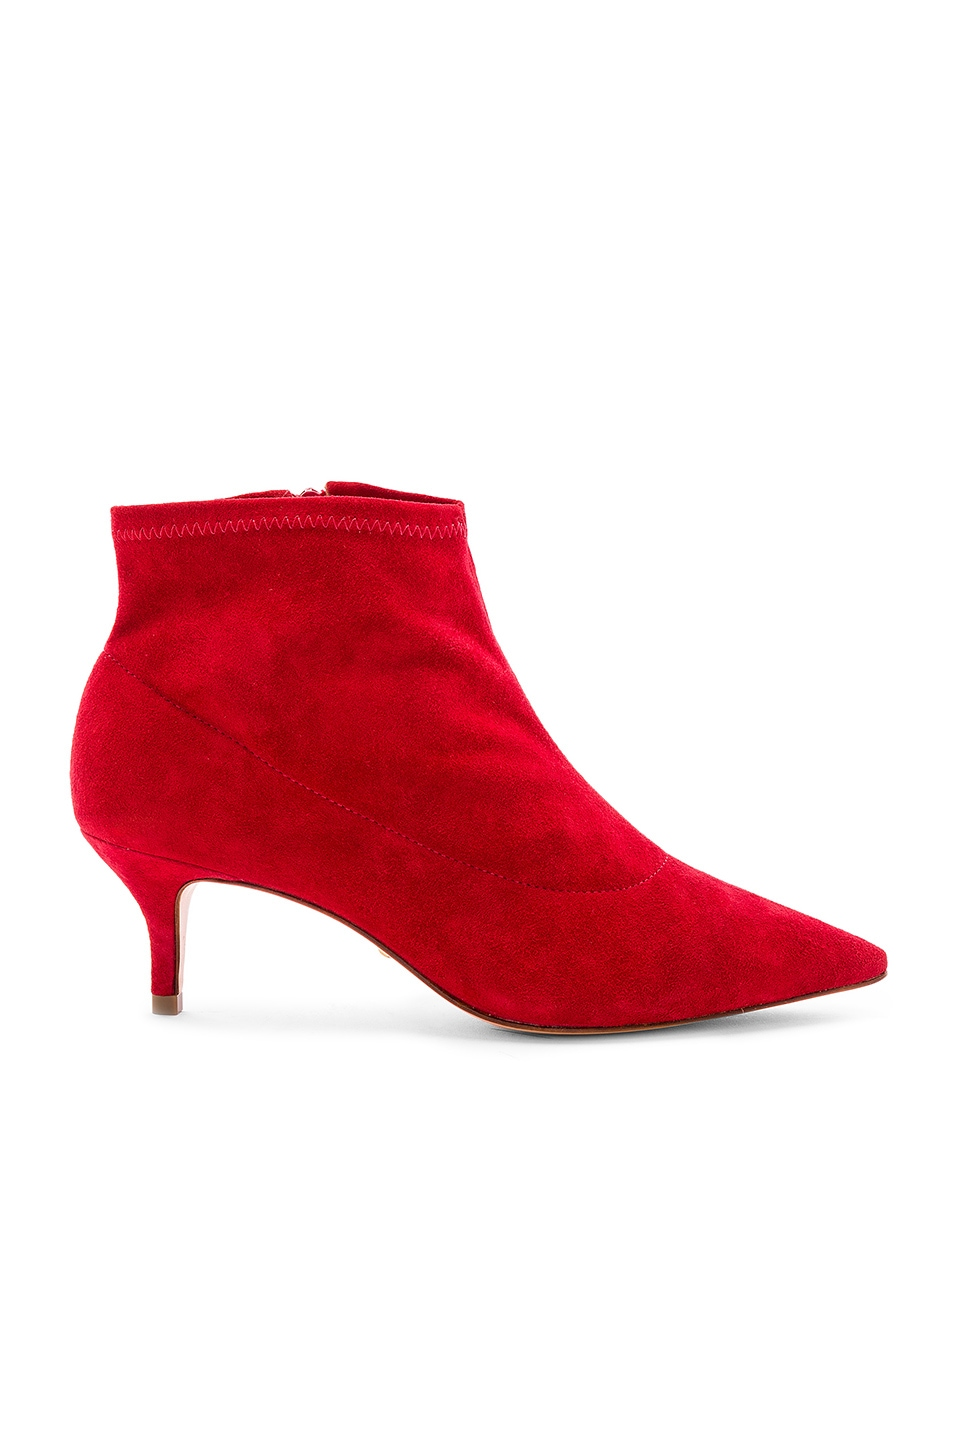 RAYE Surge Bootie in Red